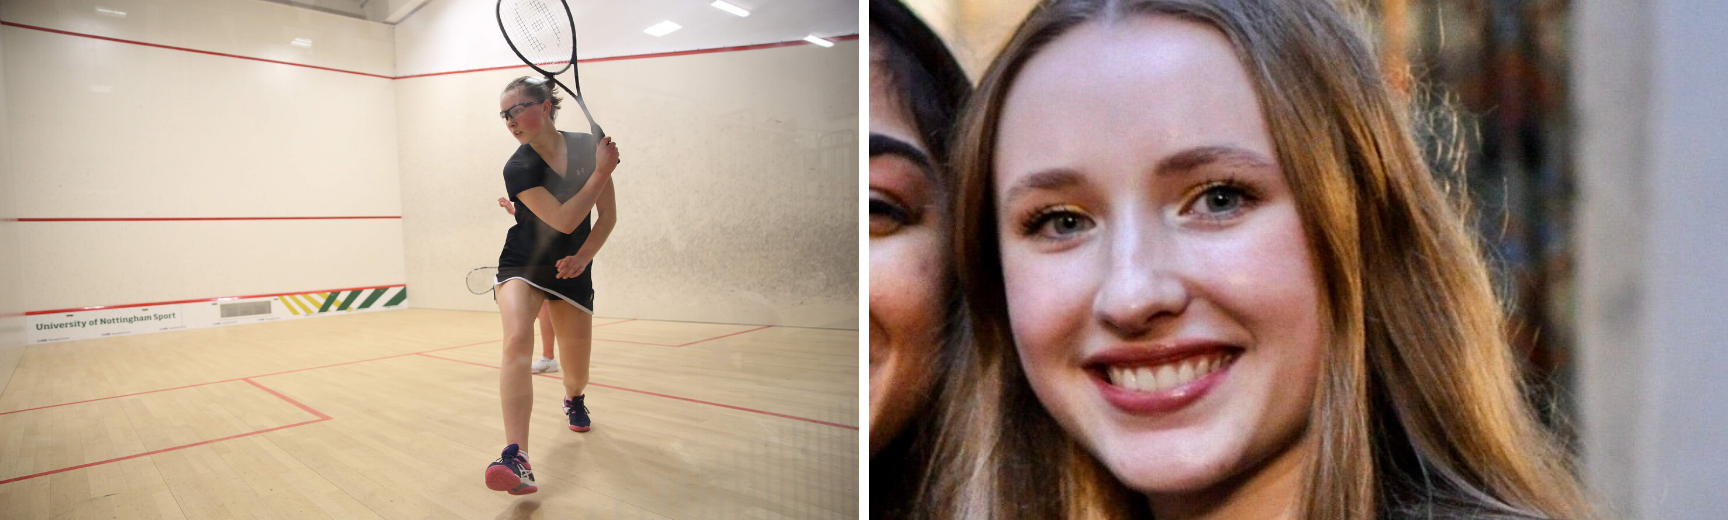 An image of Laura hitting a backhand and a profile image of Laura